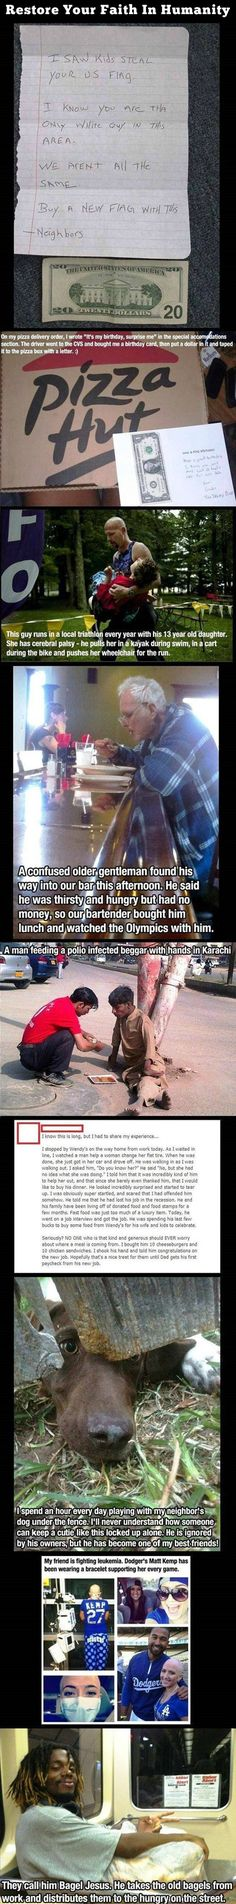 People being the change they wish to see in the world. Made me cry